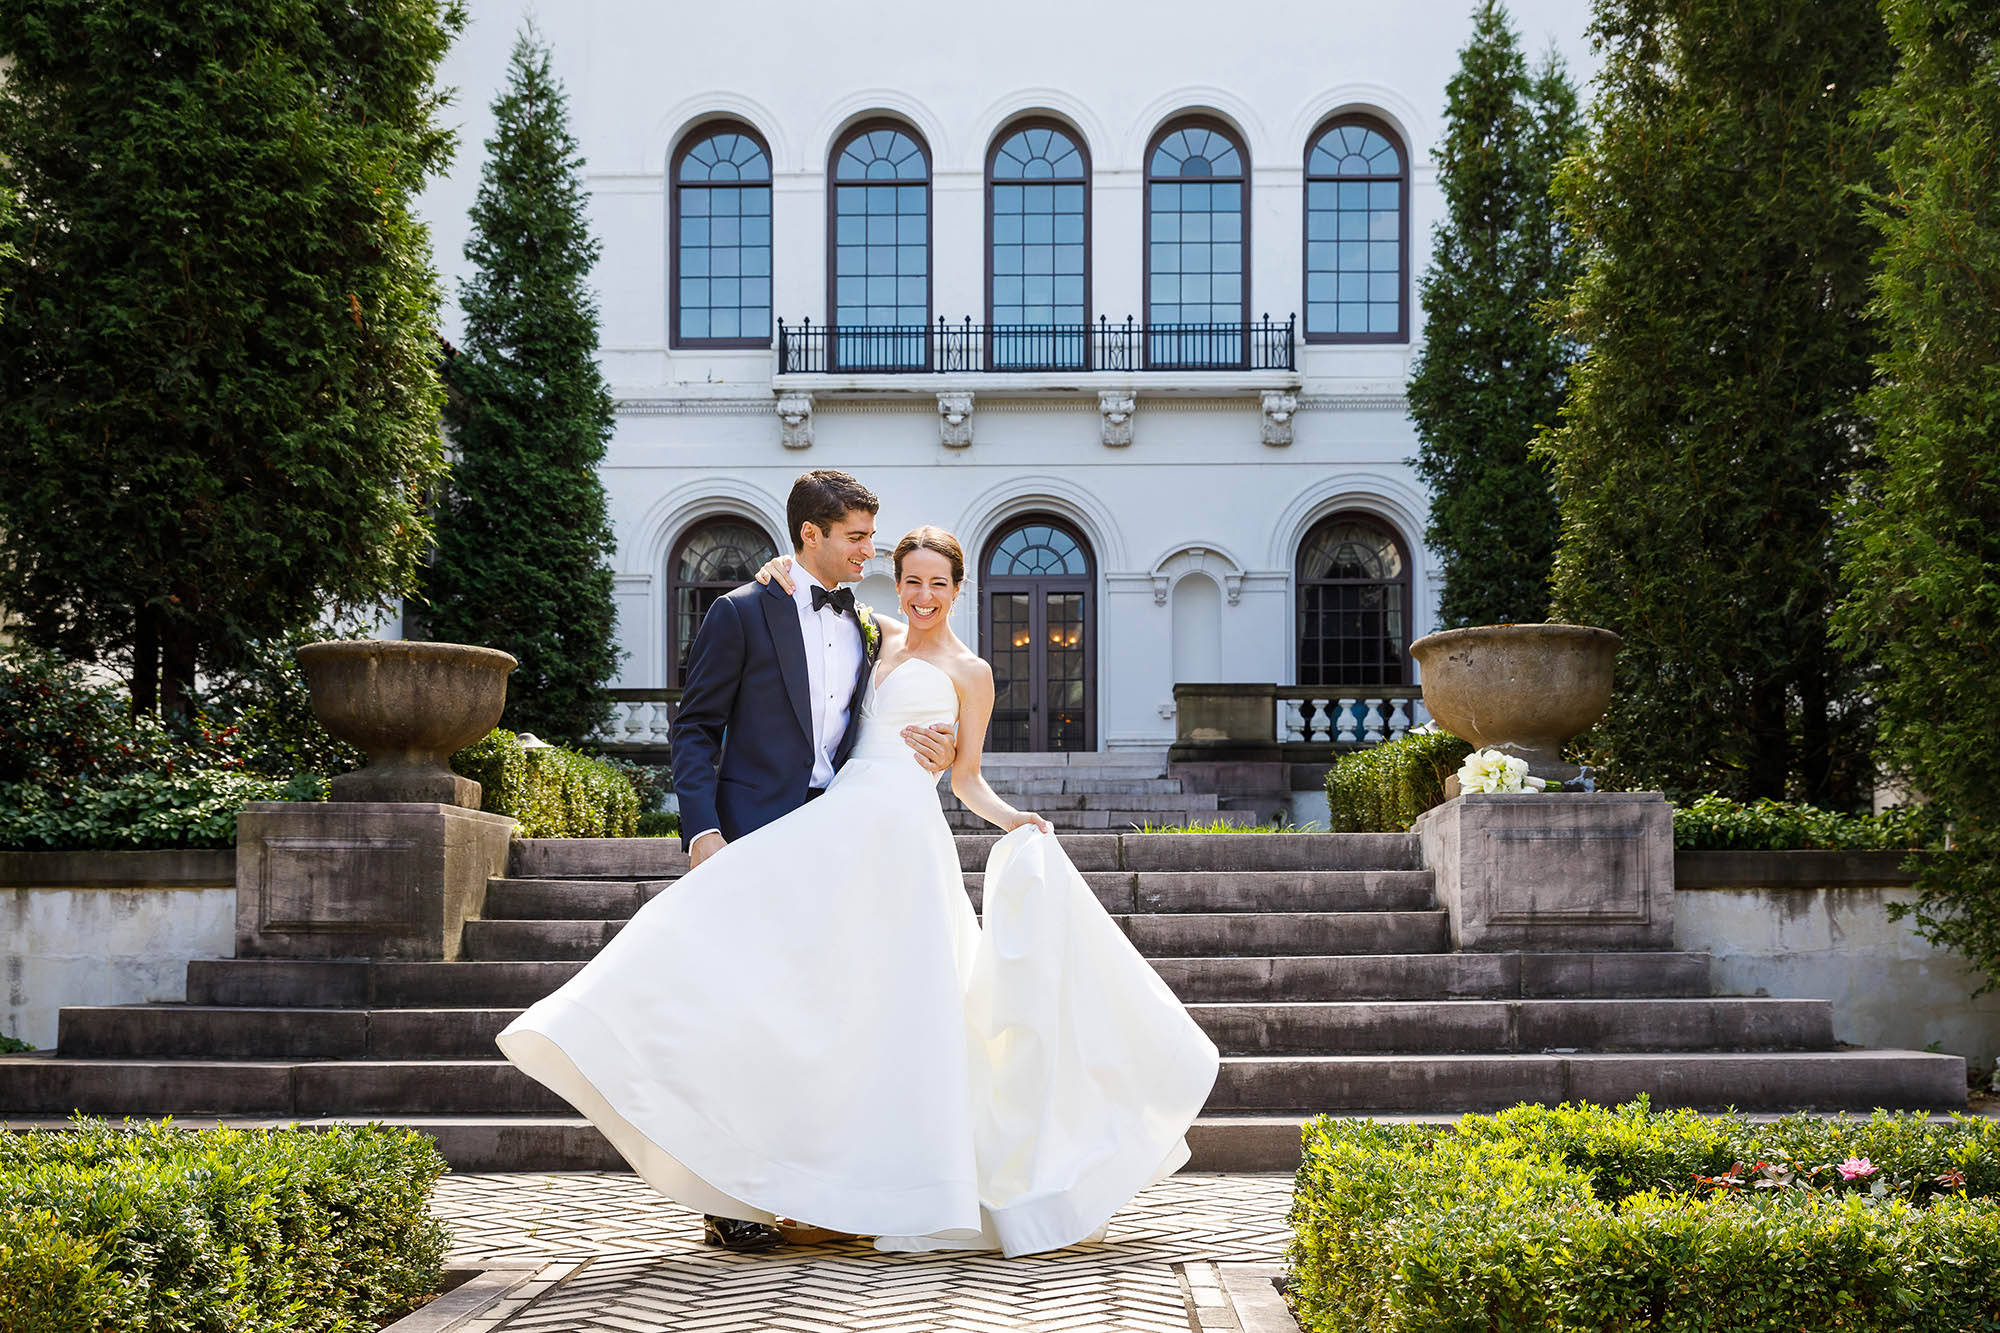 As experienced Cleveland wedding photographers, we seek out beautiful and unique locations for our brides and grooms on their wedding days. This bride and groom had a personal connection with the Western Reserve Historical Society so it was the perfect location for their bridal party portraits.